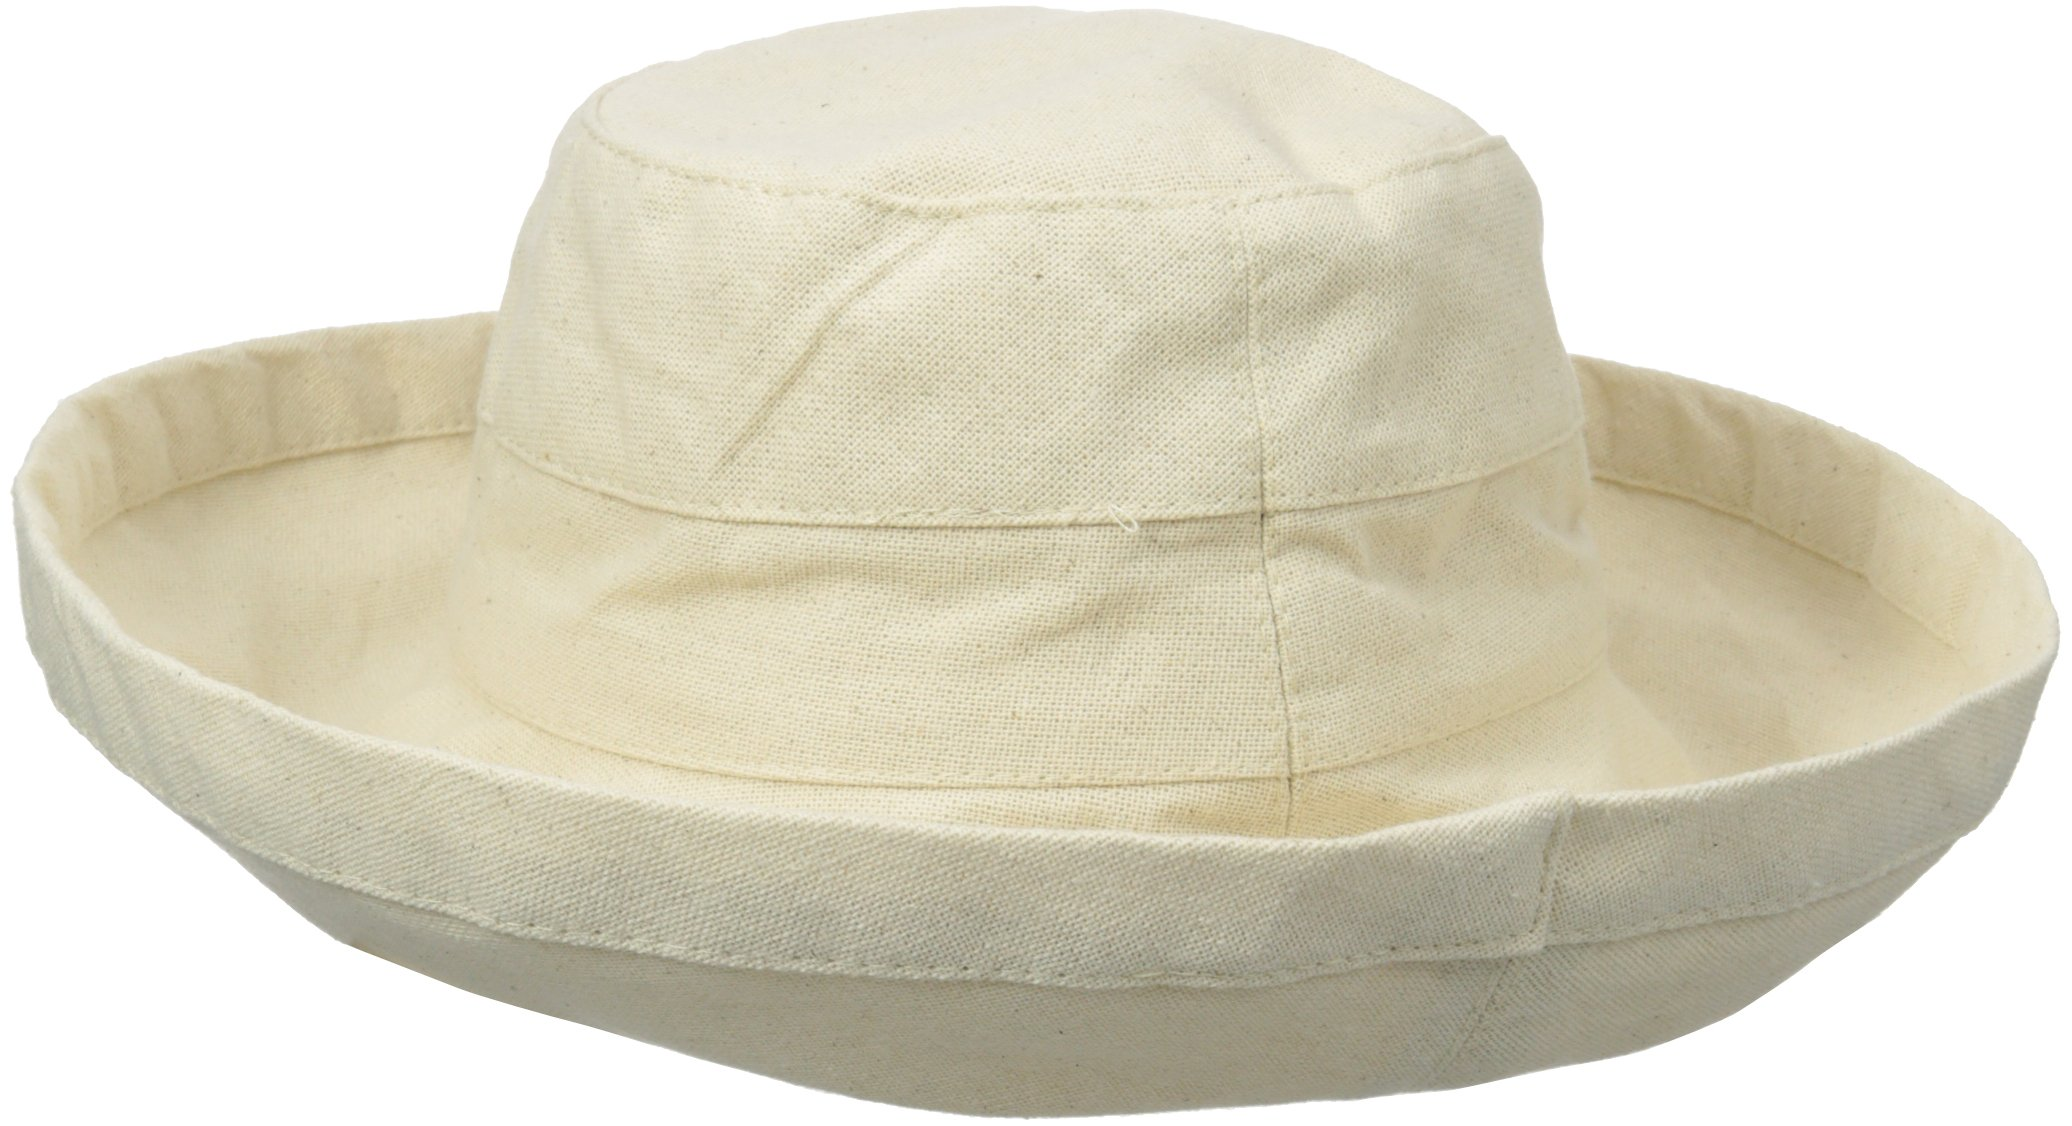 Scala Women's Cotton Hat with Inner Drawstring and Upf 50+ Rating,Linen,One Size